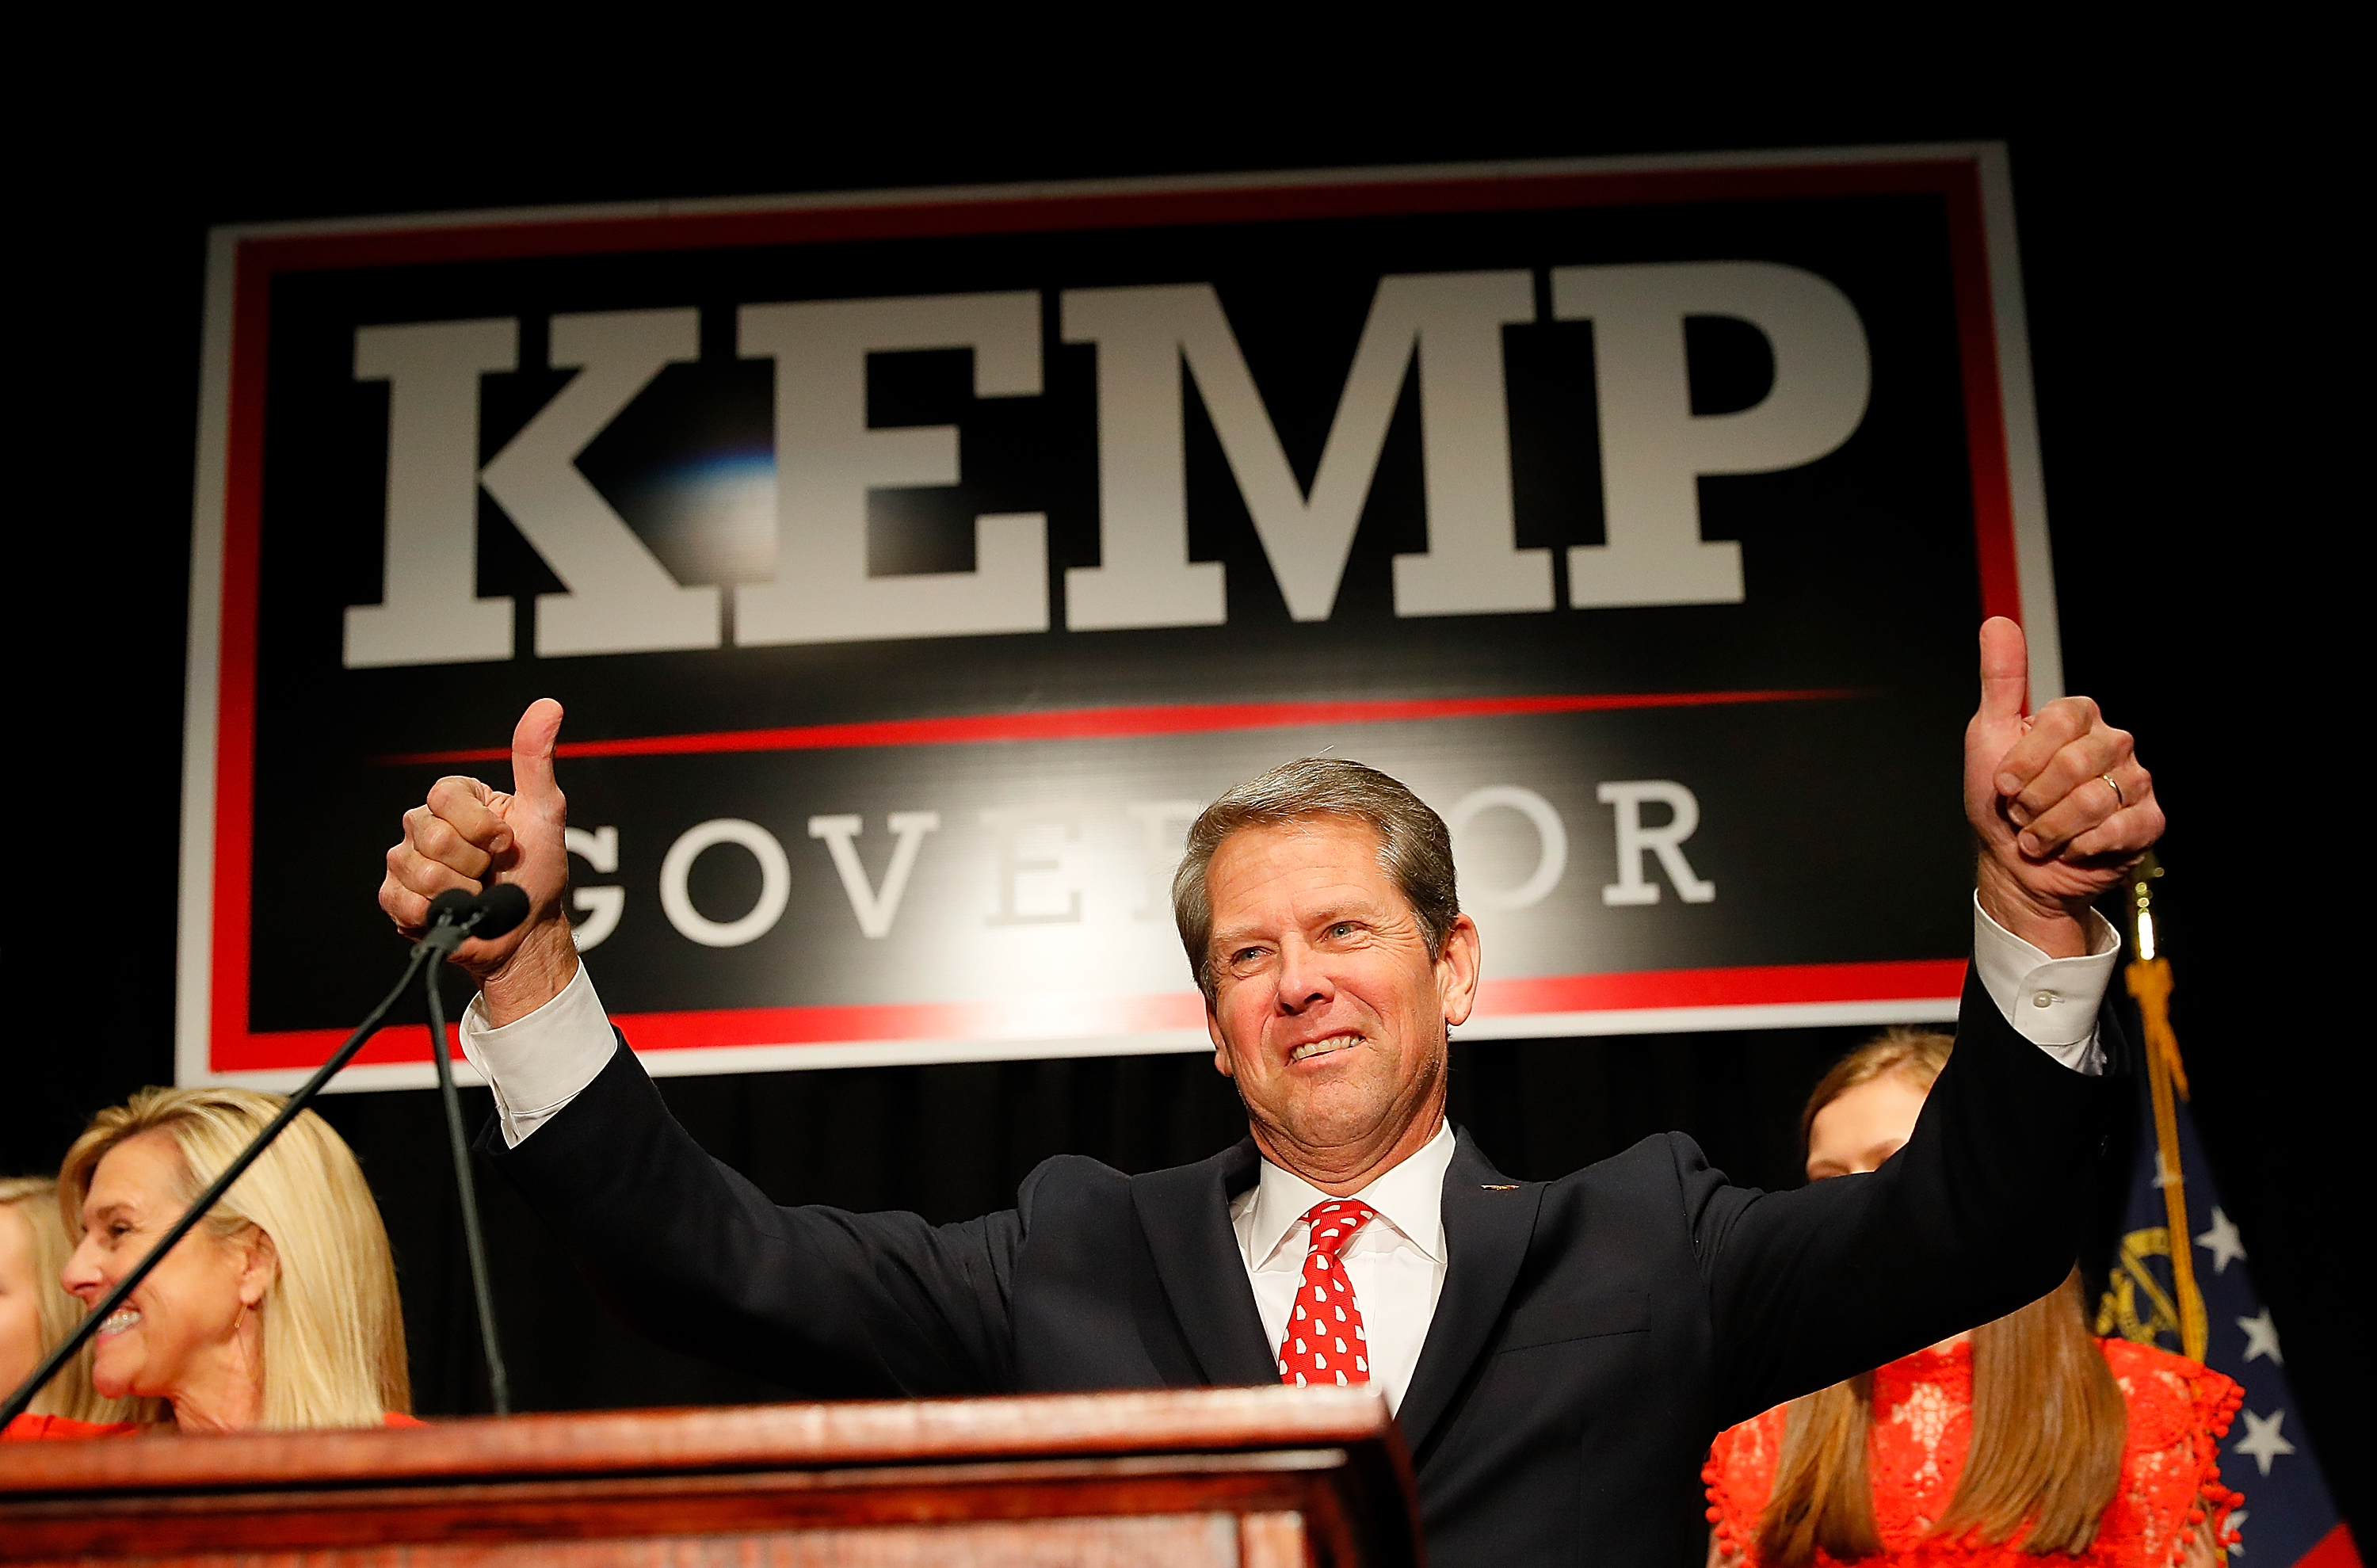 Republican gubernatorial candidate Brian Kemp attends the Election Night event at the Classic Center on November 6, 2018 in Athens, Georgia. Kemp is in a close race with Democrat Stacey Abrams. (Kevin C. Cox/Getty Images)